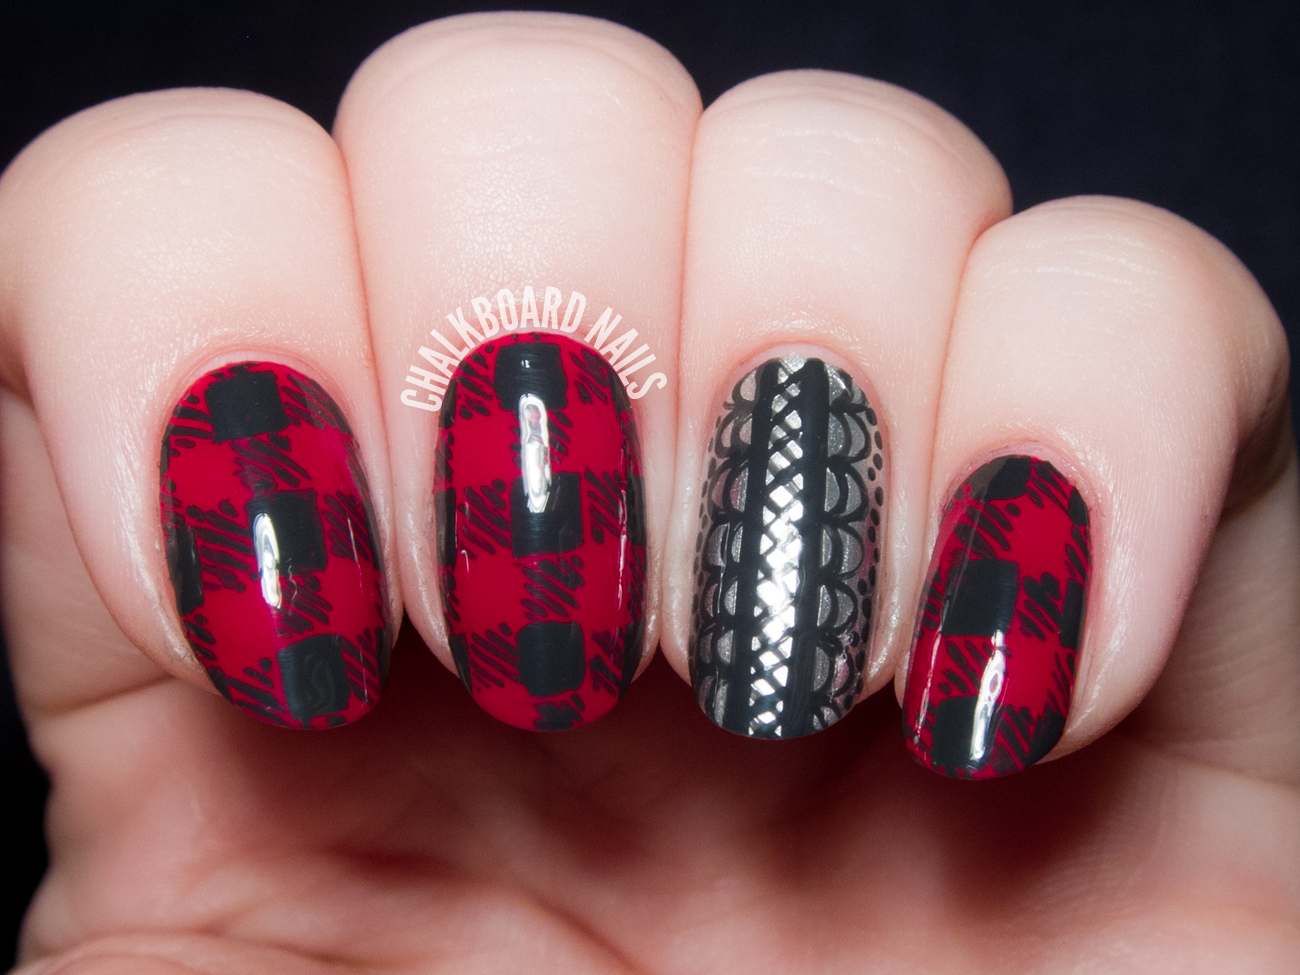 Flannel and Lace by @chalkboardnails